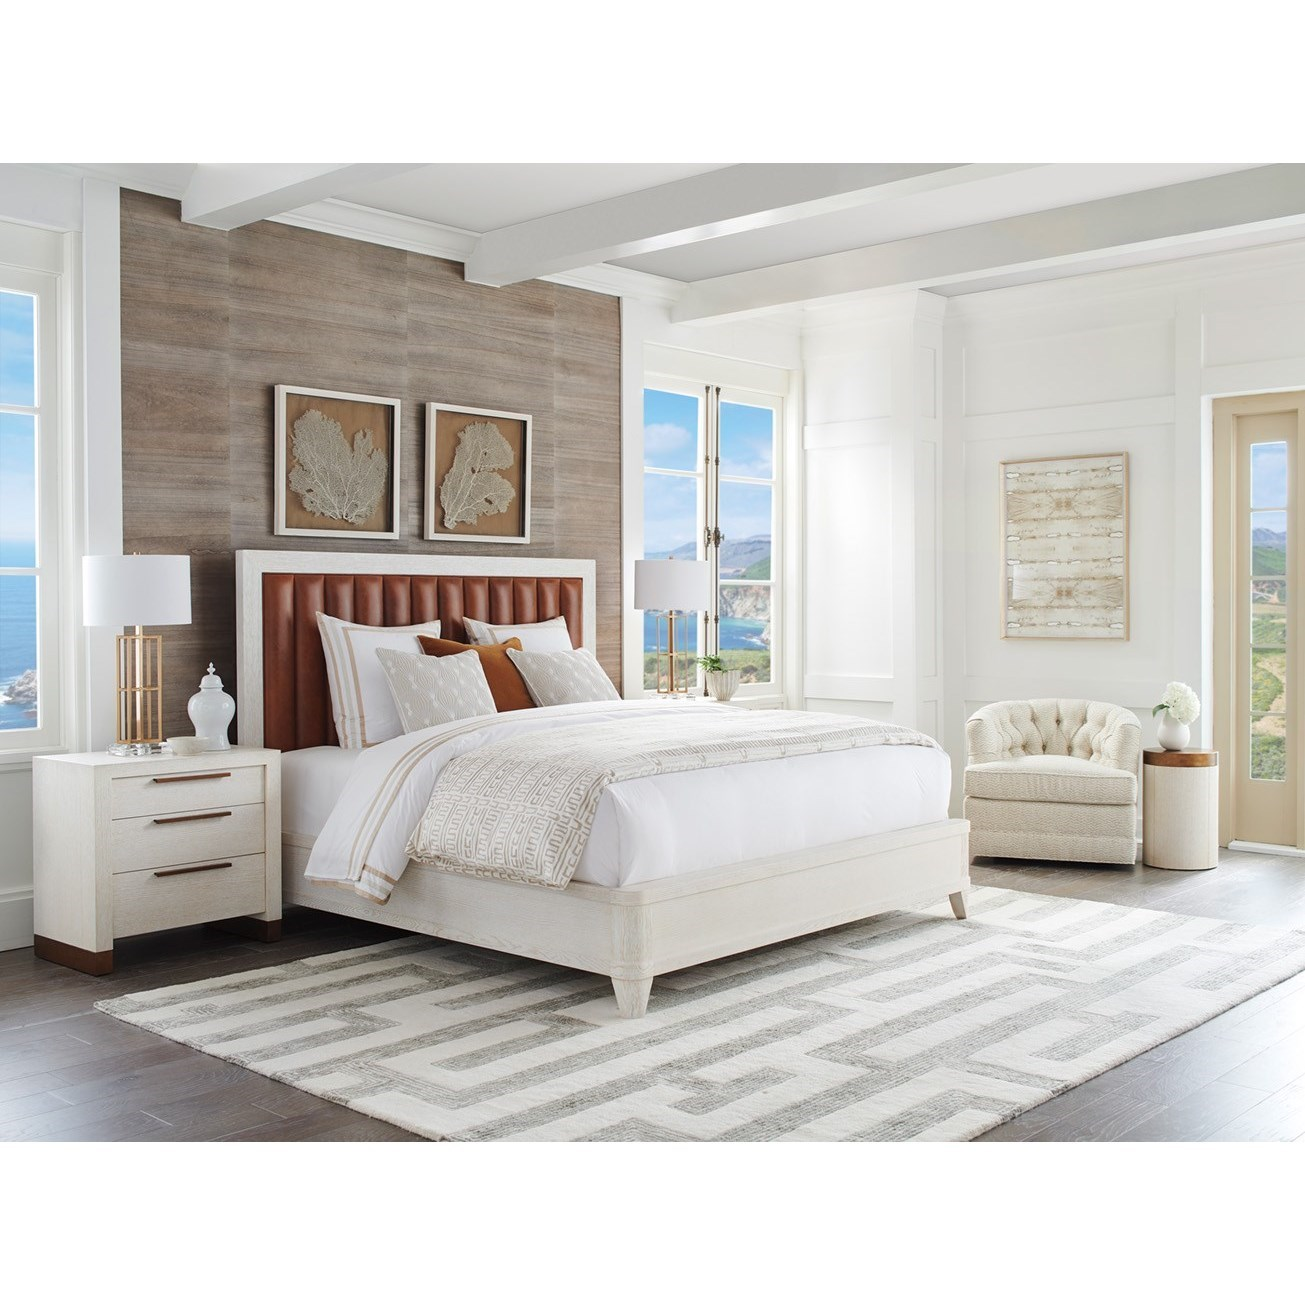 Carmel King Bedroom Group by Barclay Butera at Baer's Furniture